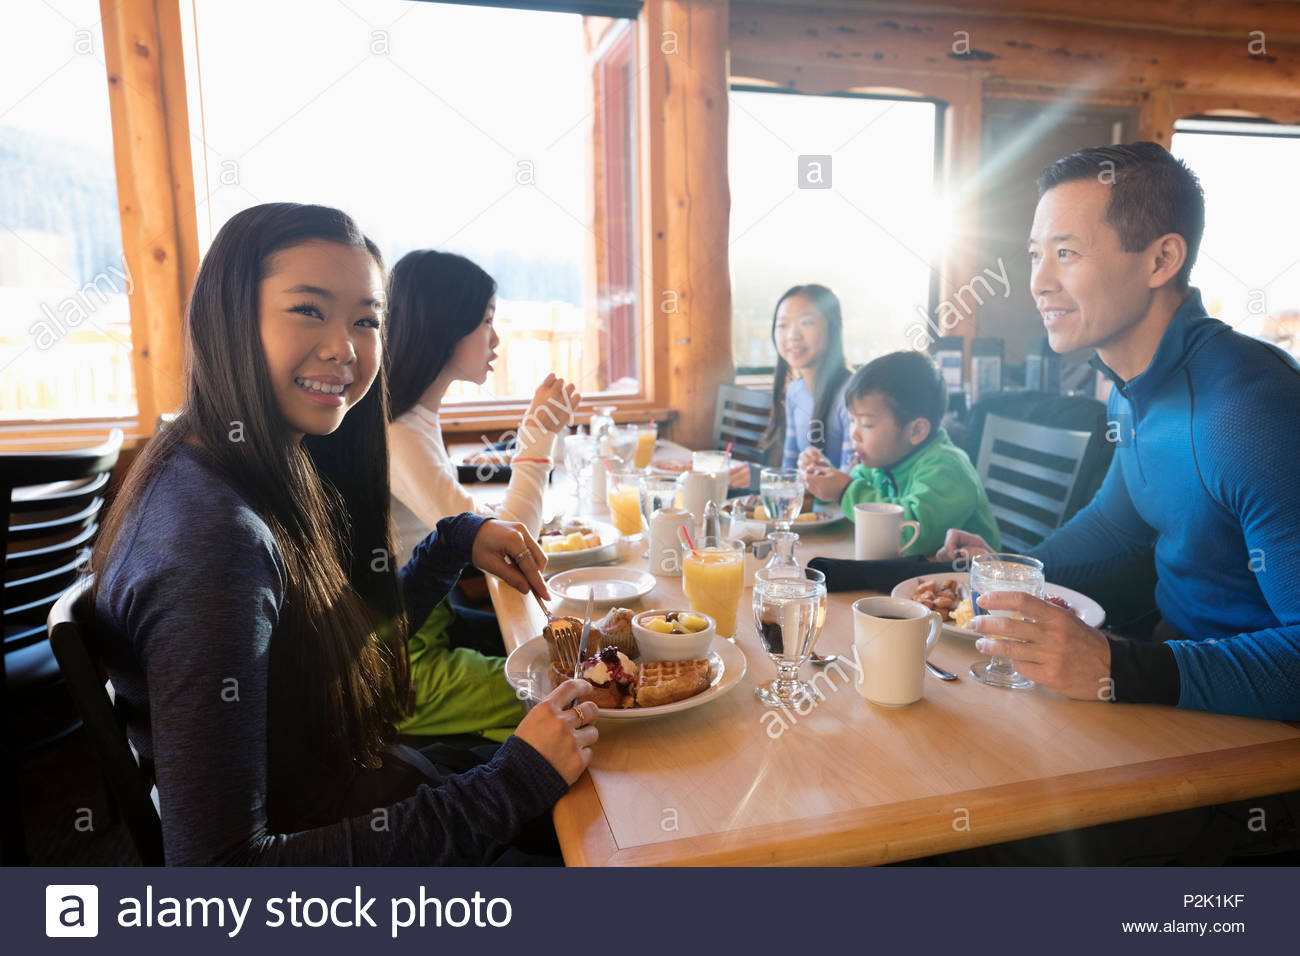 Portrait confident teenage girl enjoying breakfast with family at cabin table - Stock Image